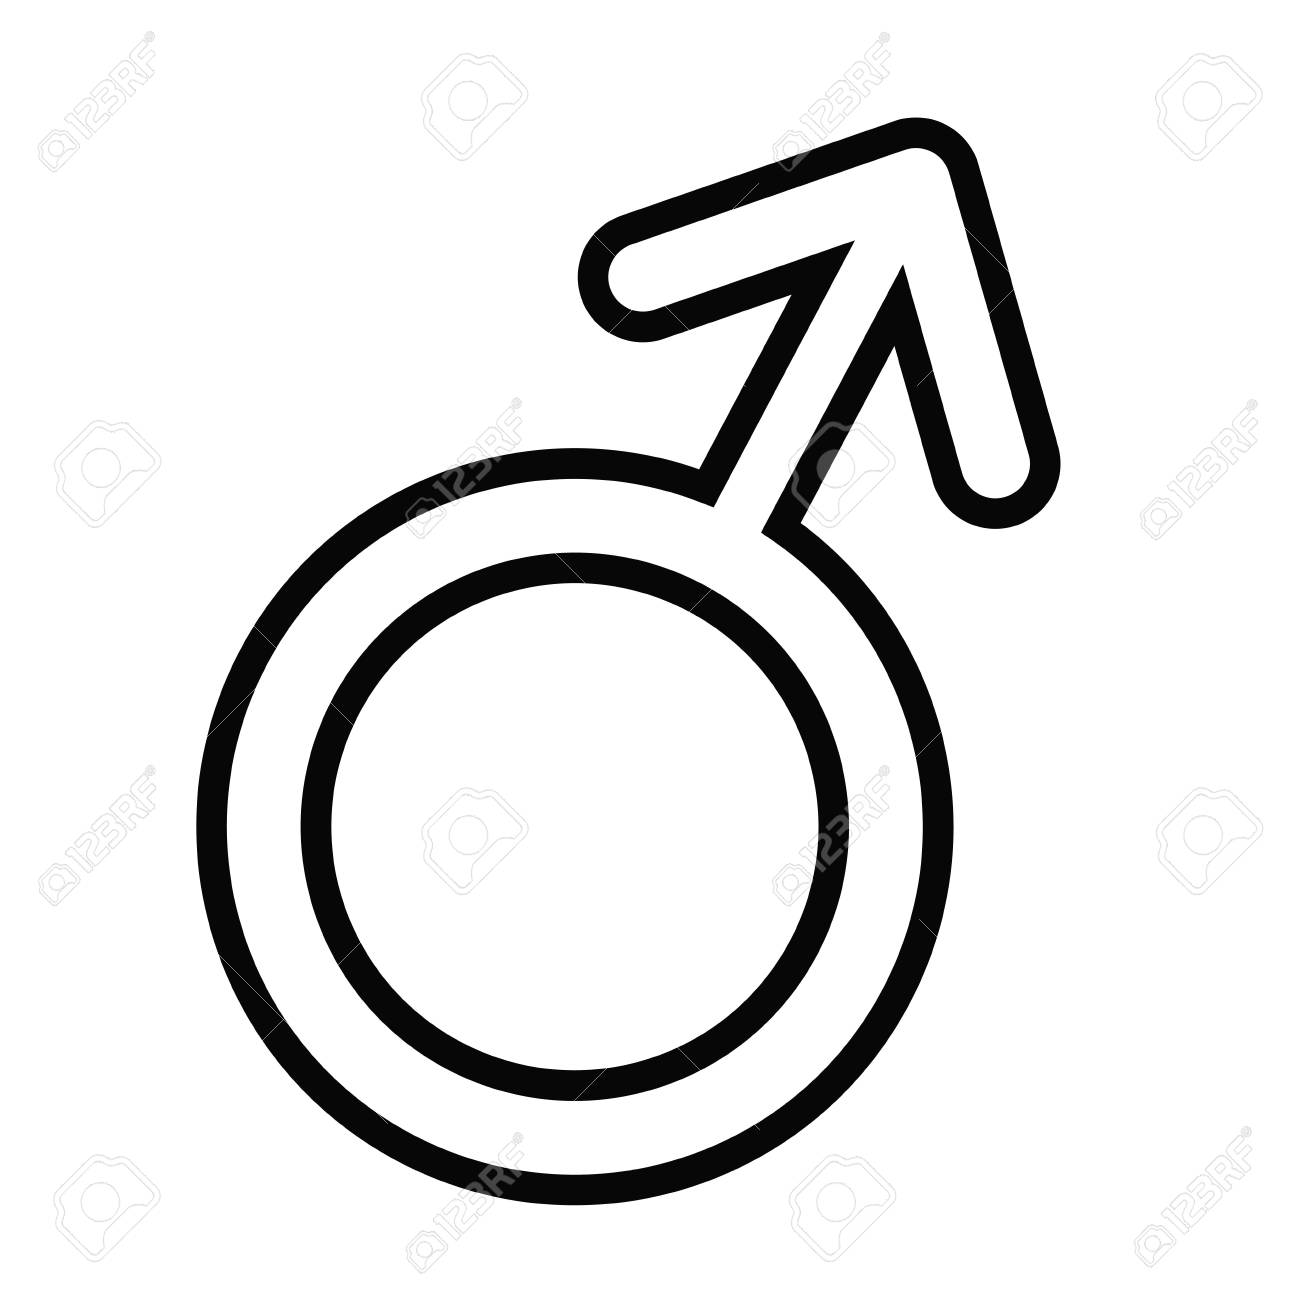 male gender icon over white background vector illustration royalty free cliparts vectors and stock illustration image 76566677 male gender icon over white background vector illustration